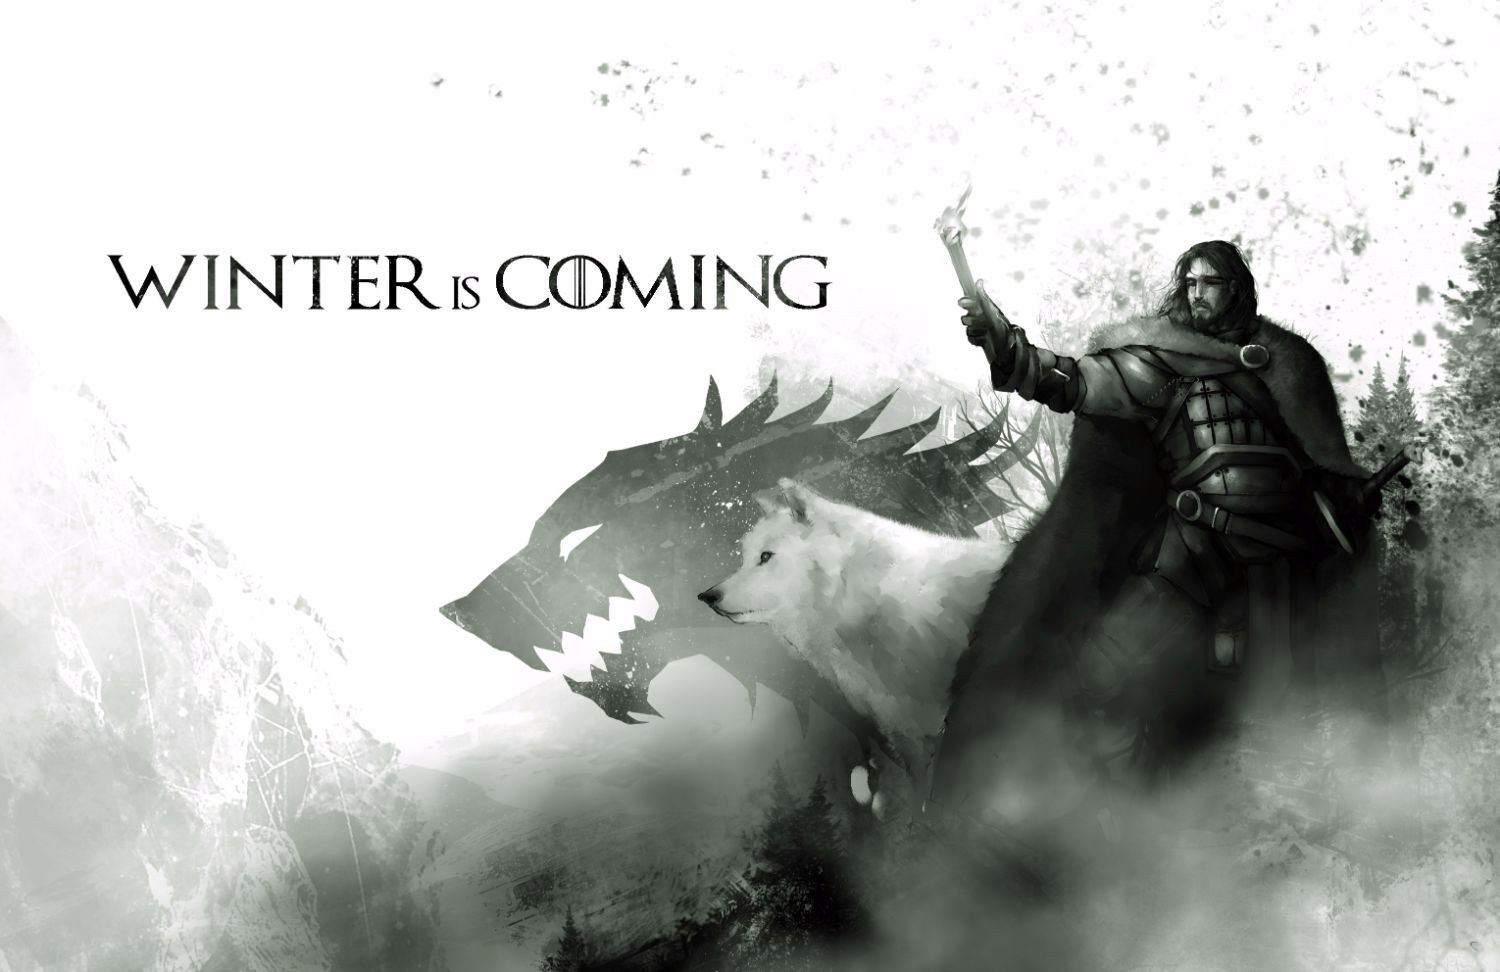 Game of Thrones Winter is Coming 2012019 1